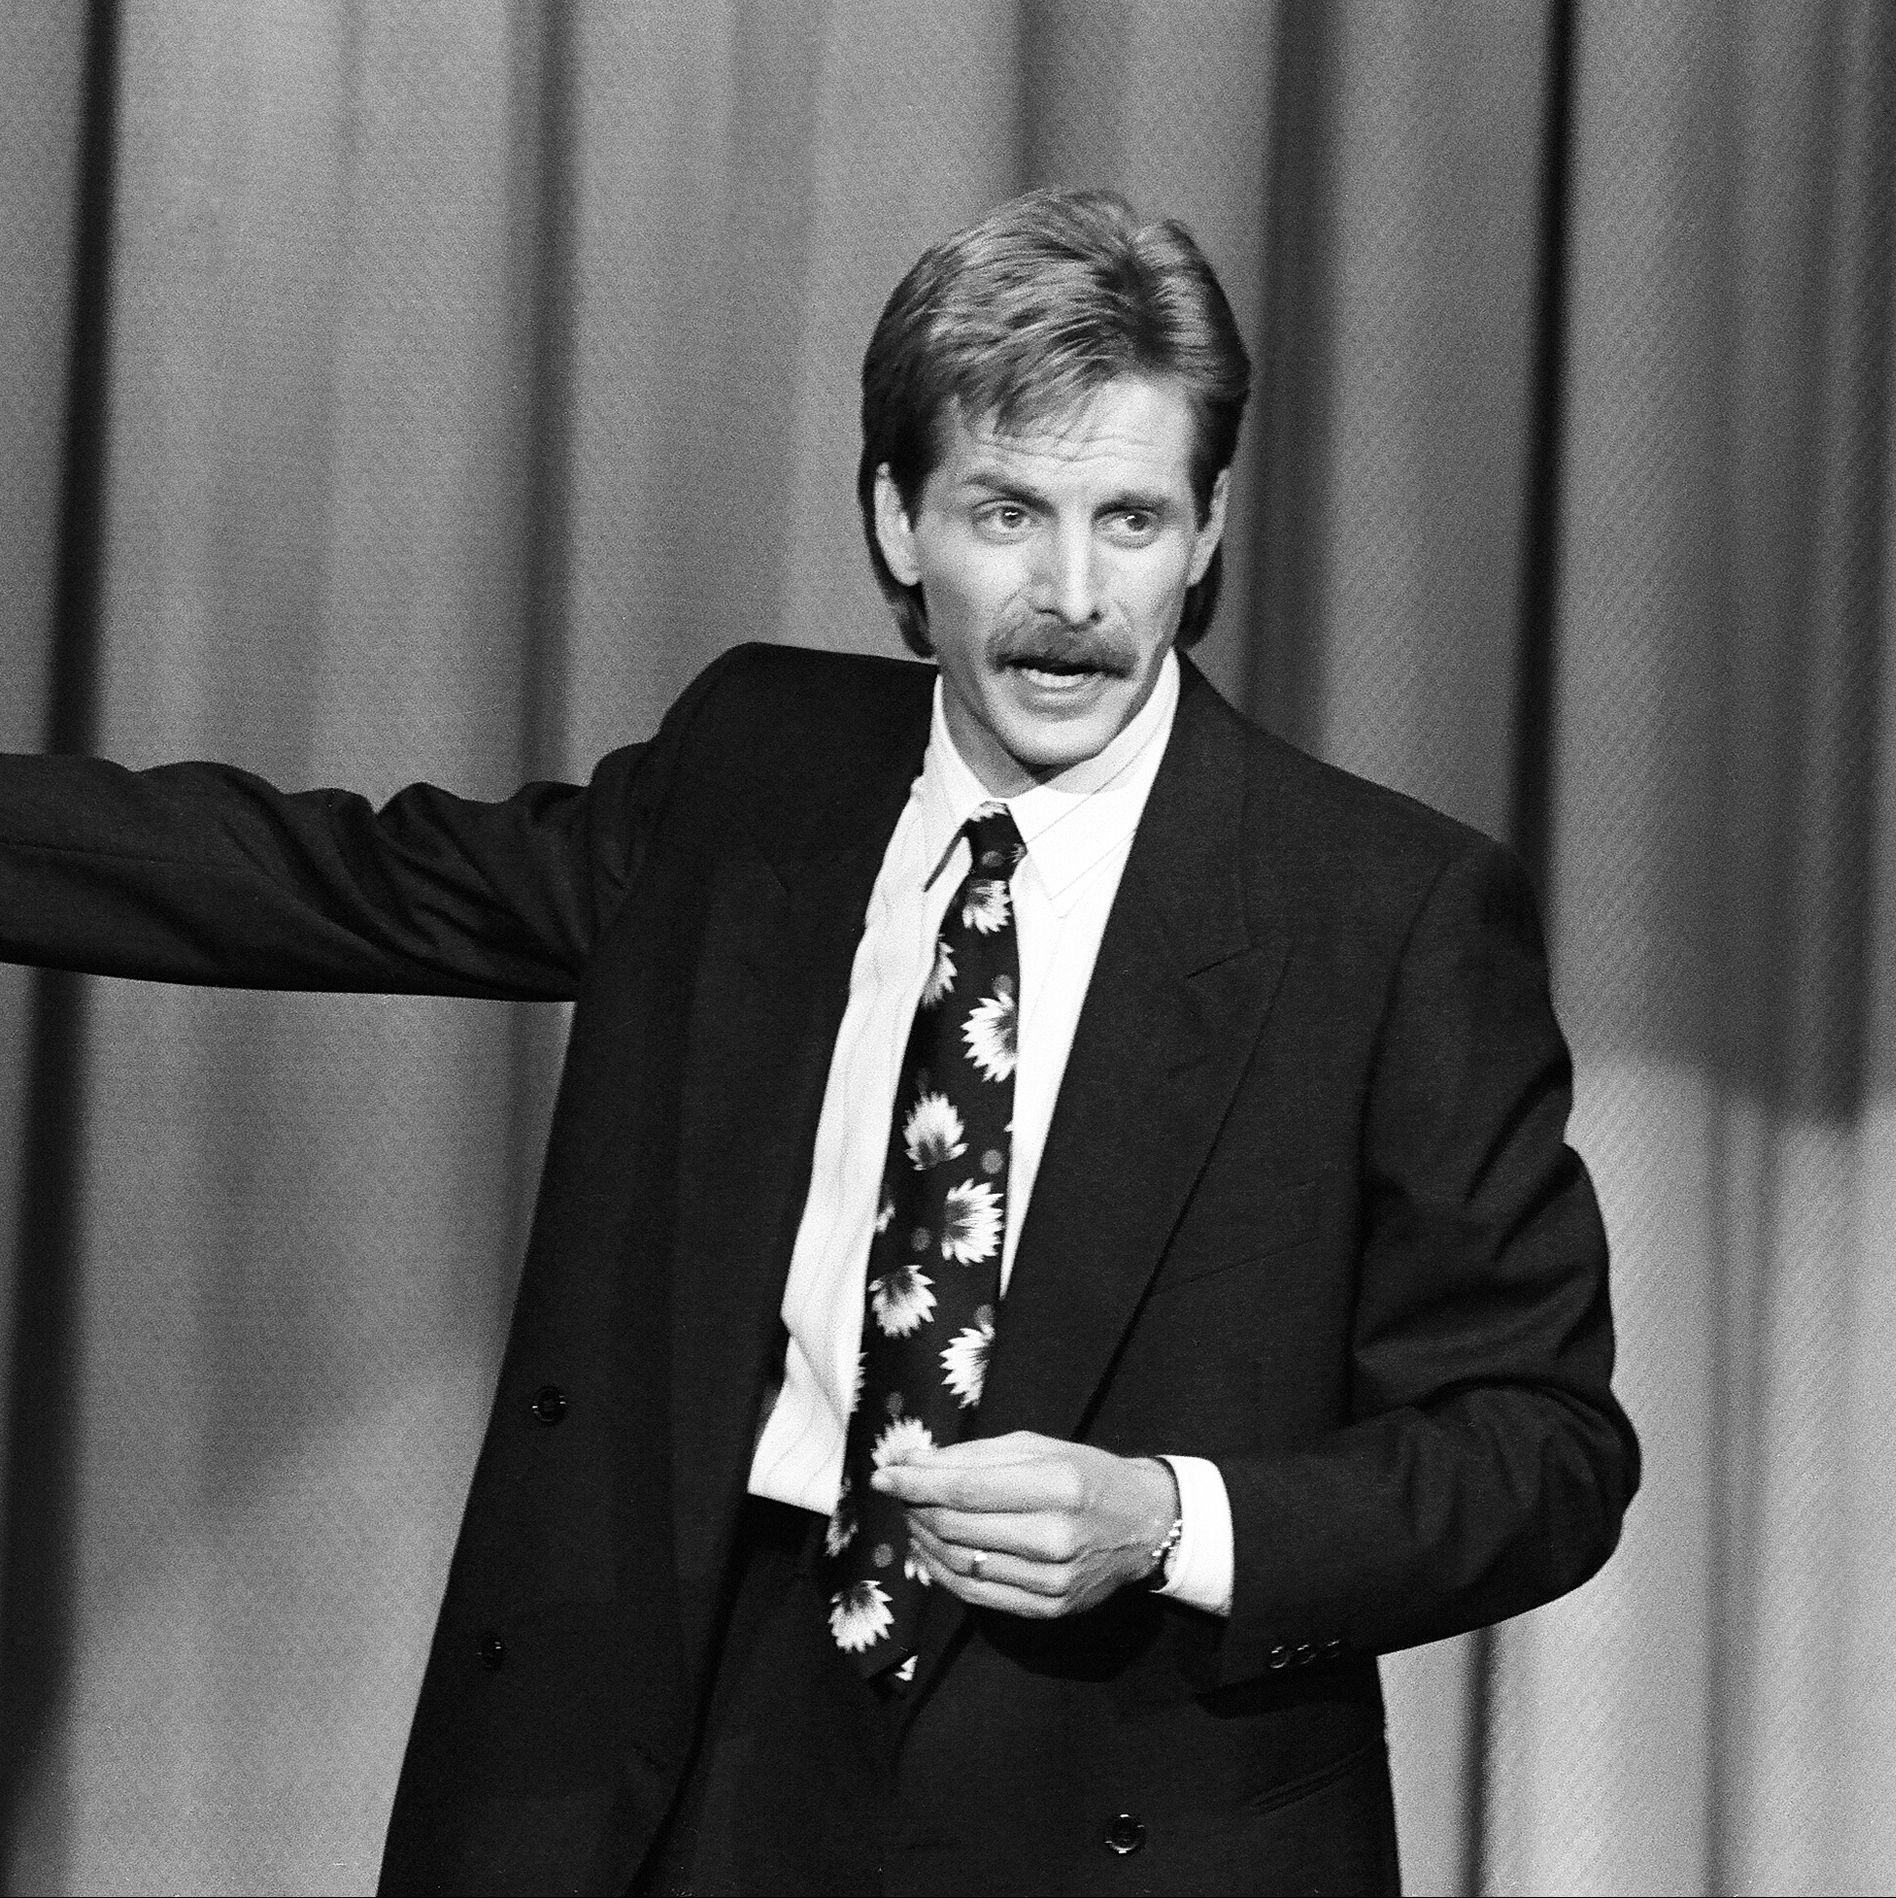 1991: Jeff Foxworthy You might be surprised to find out that Foxworthy has been rocking what's become one of the most famous mustaches in stand-up since 11th grade.